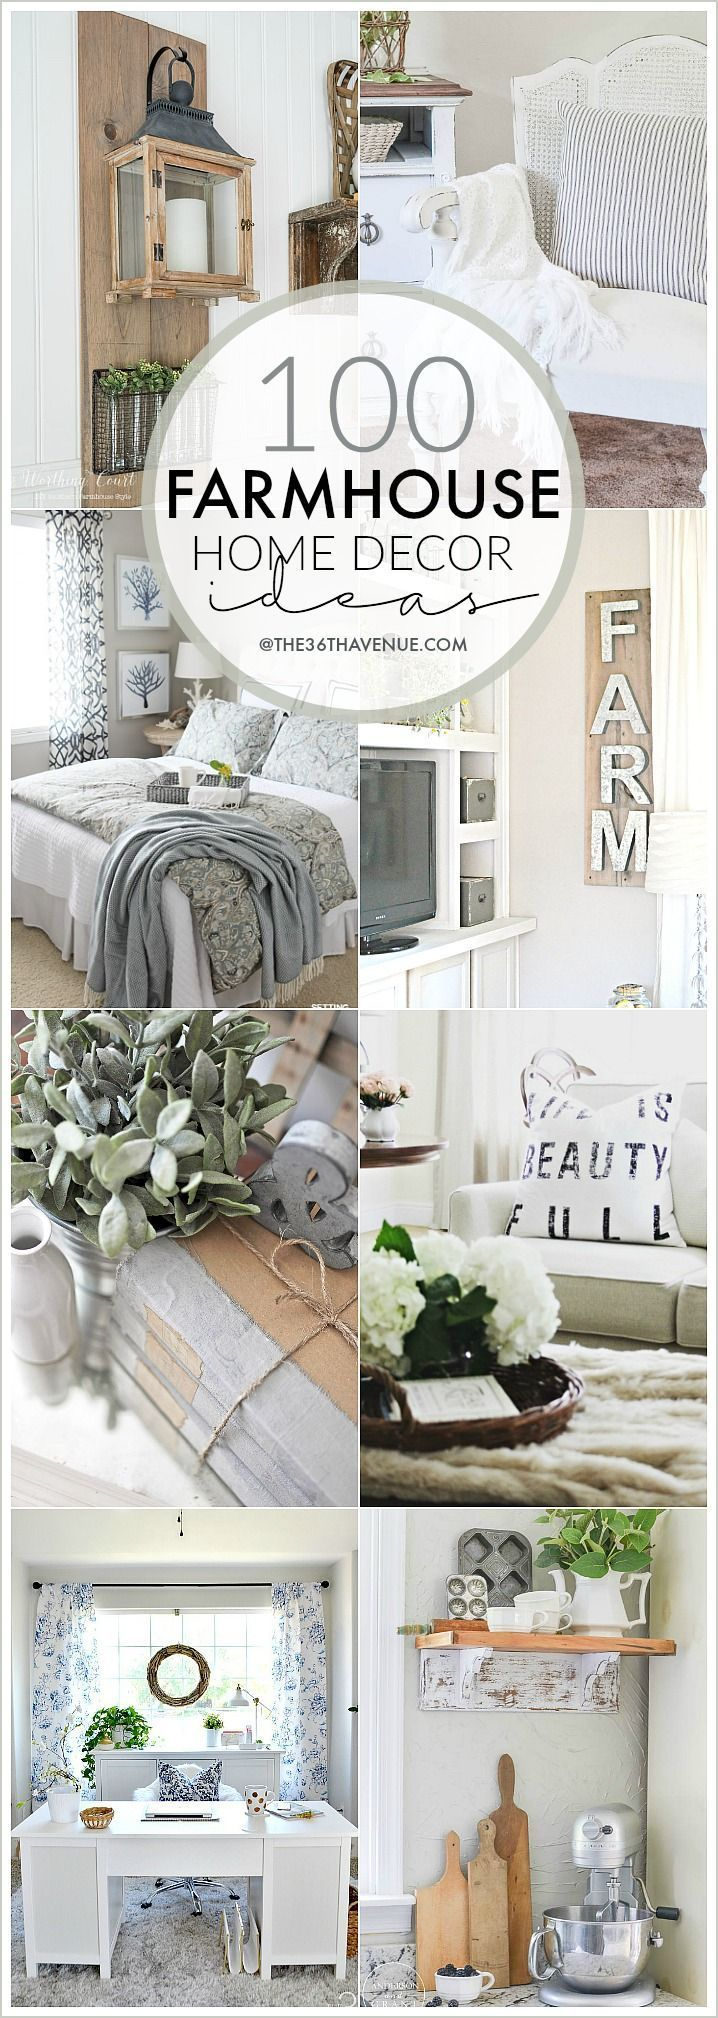 Home Decorating Ideas Vintage Autumn Inspired Home Decor: Best 25+ Home Decor Accessories Ideas On Pinterest